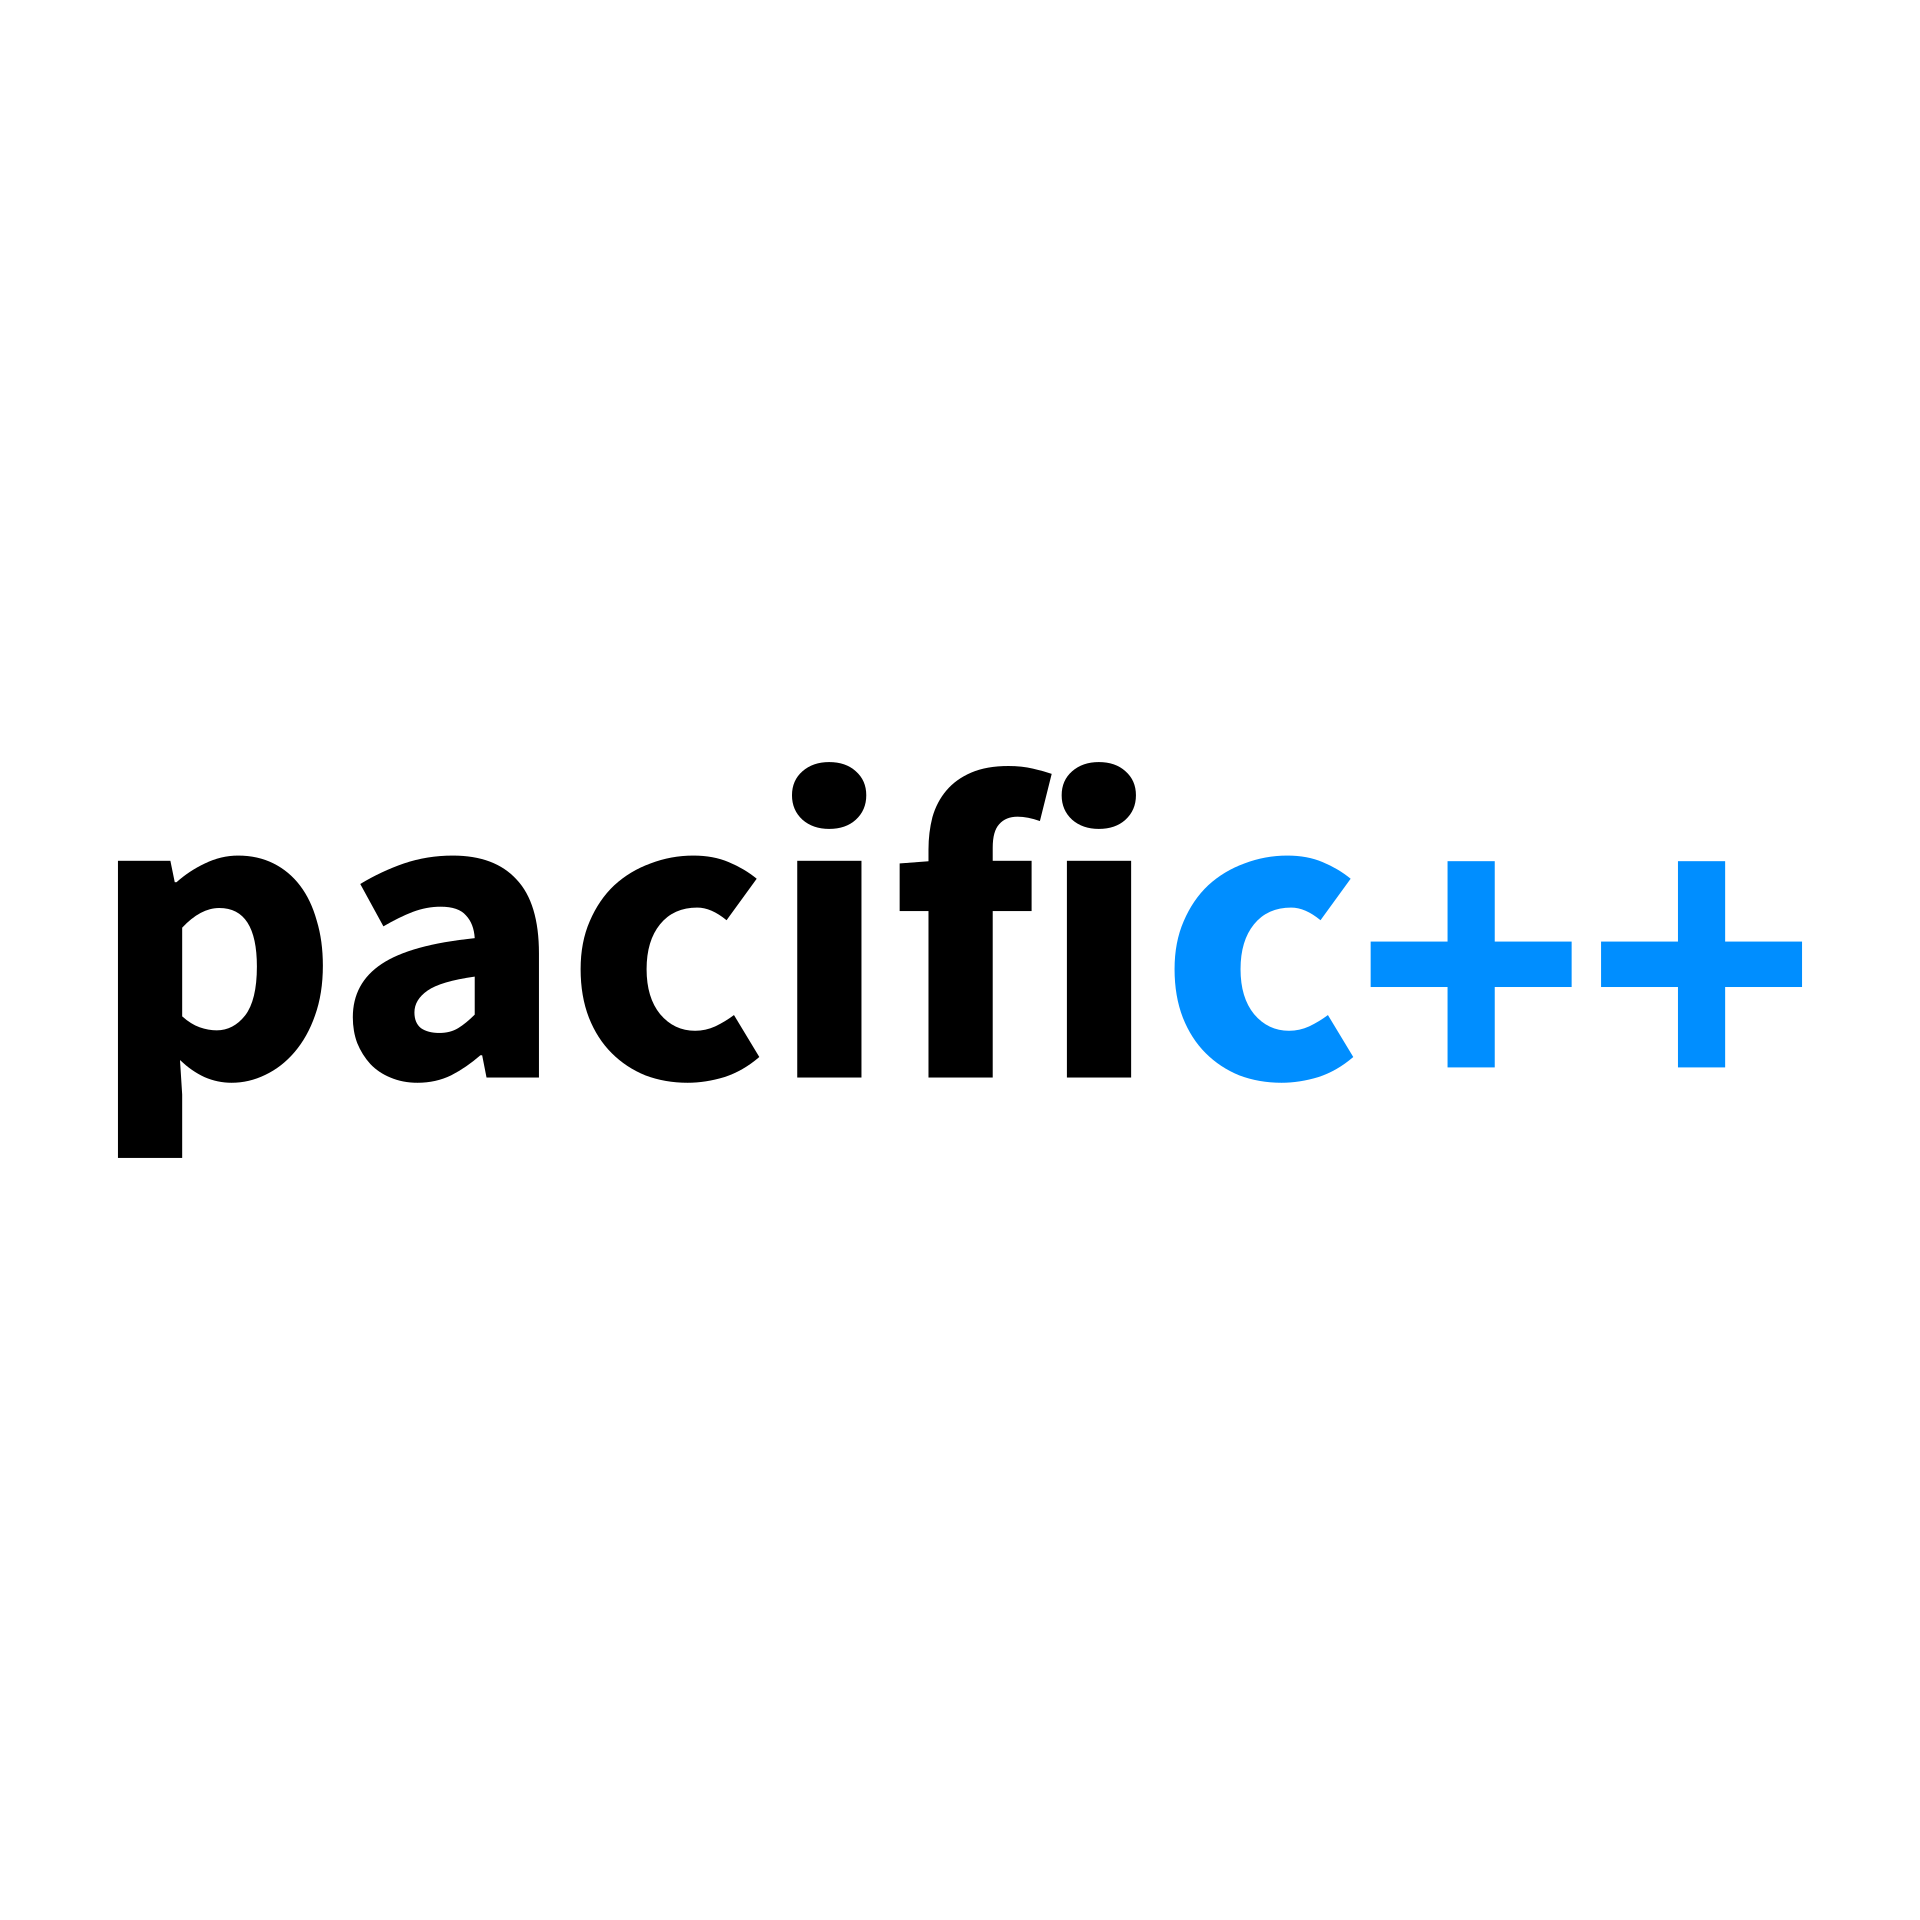 Pacific++